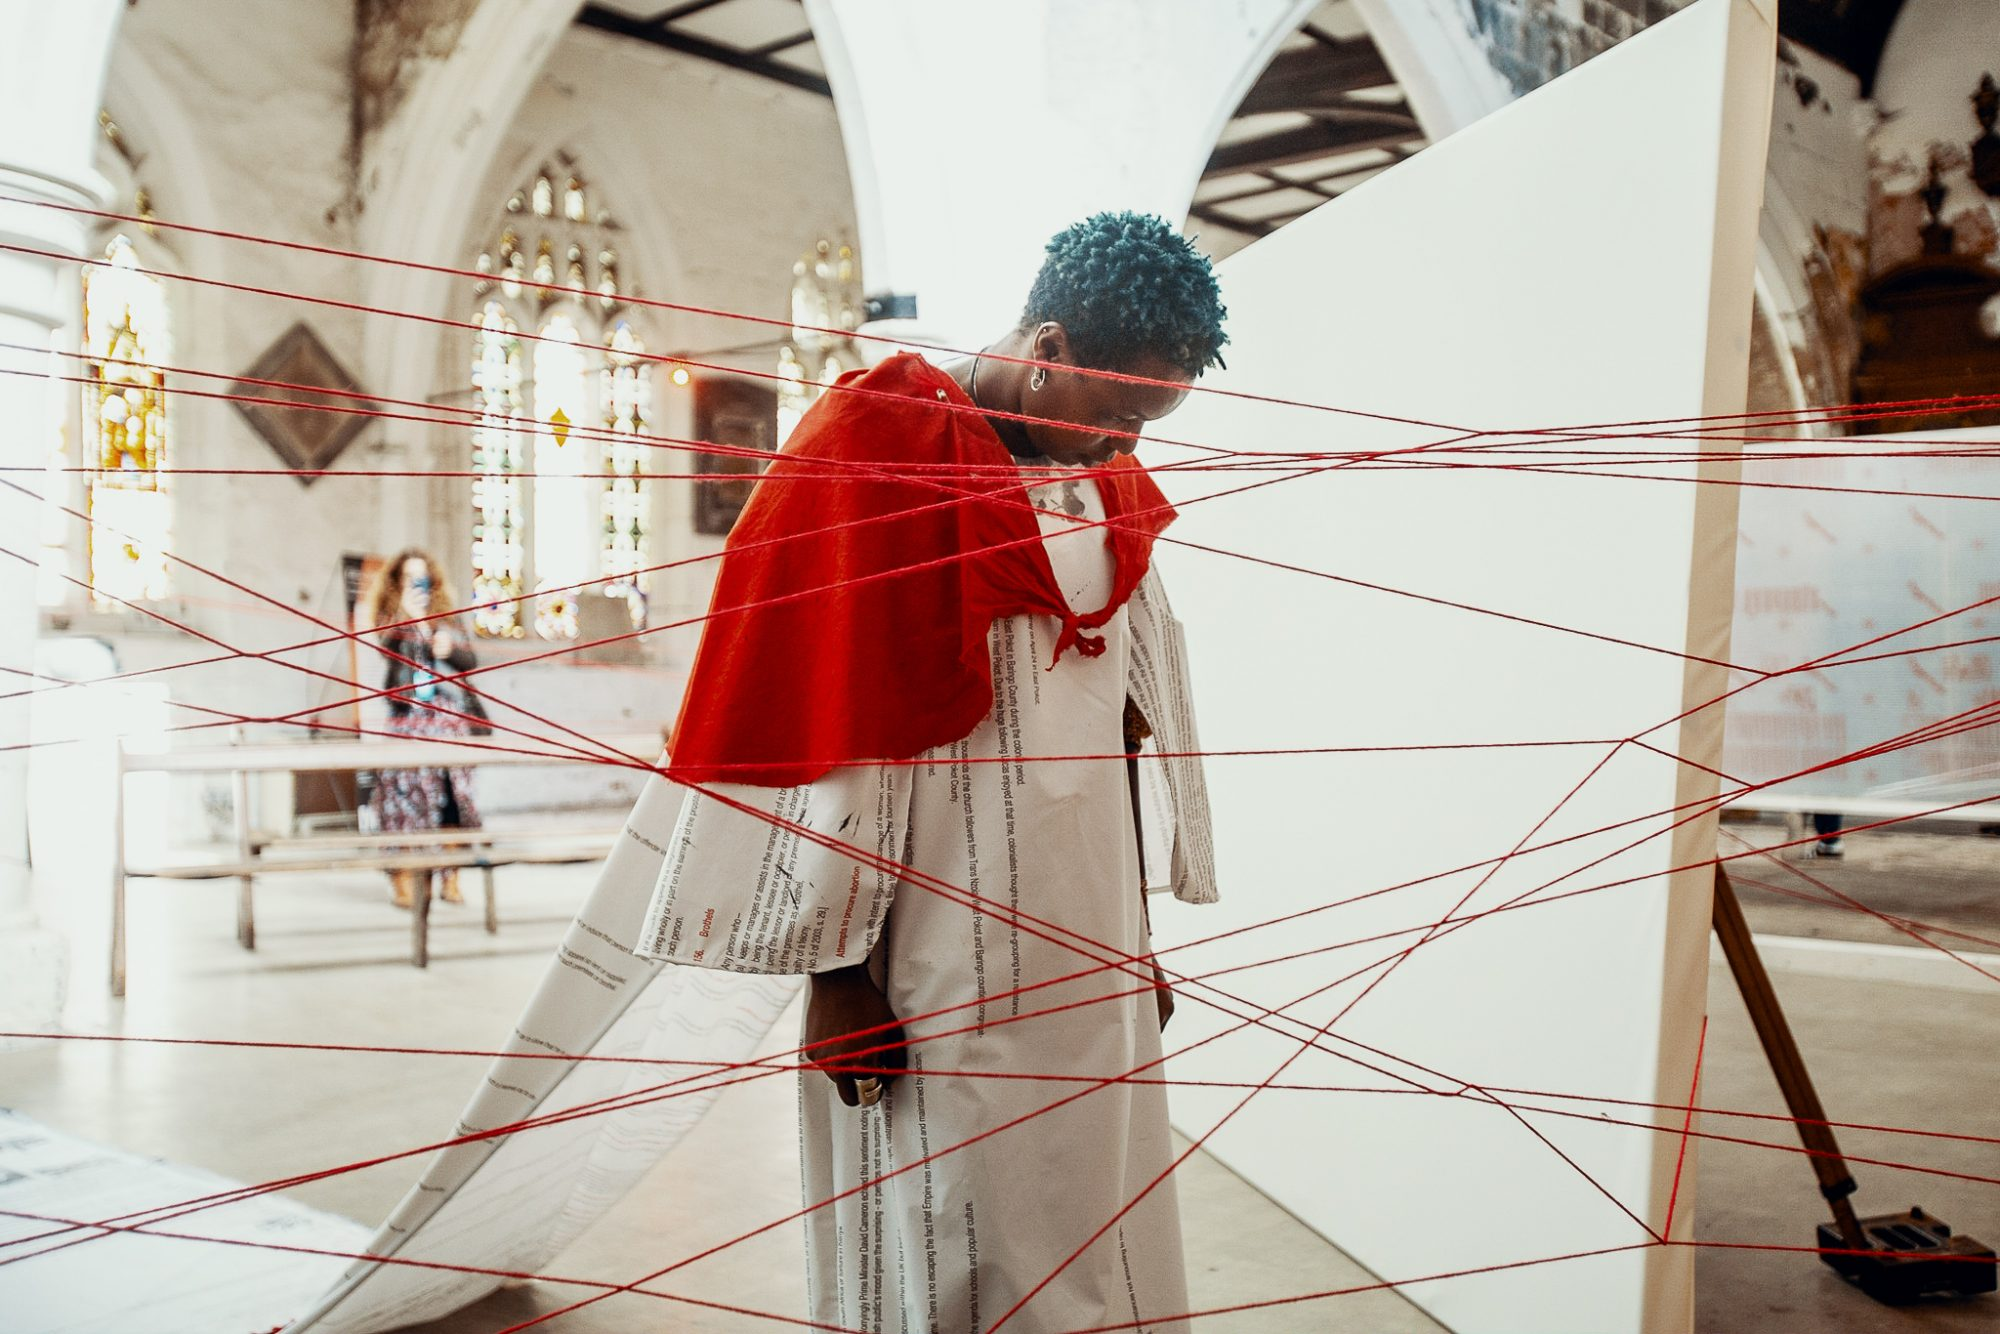 Neo Sinoxolo Musangi performing The Way of the Cross for Still We Rise © York Mediale